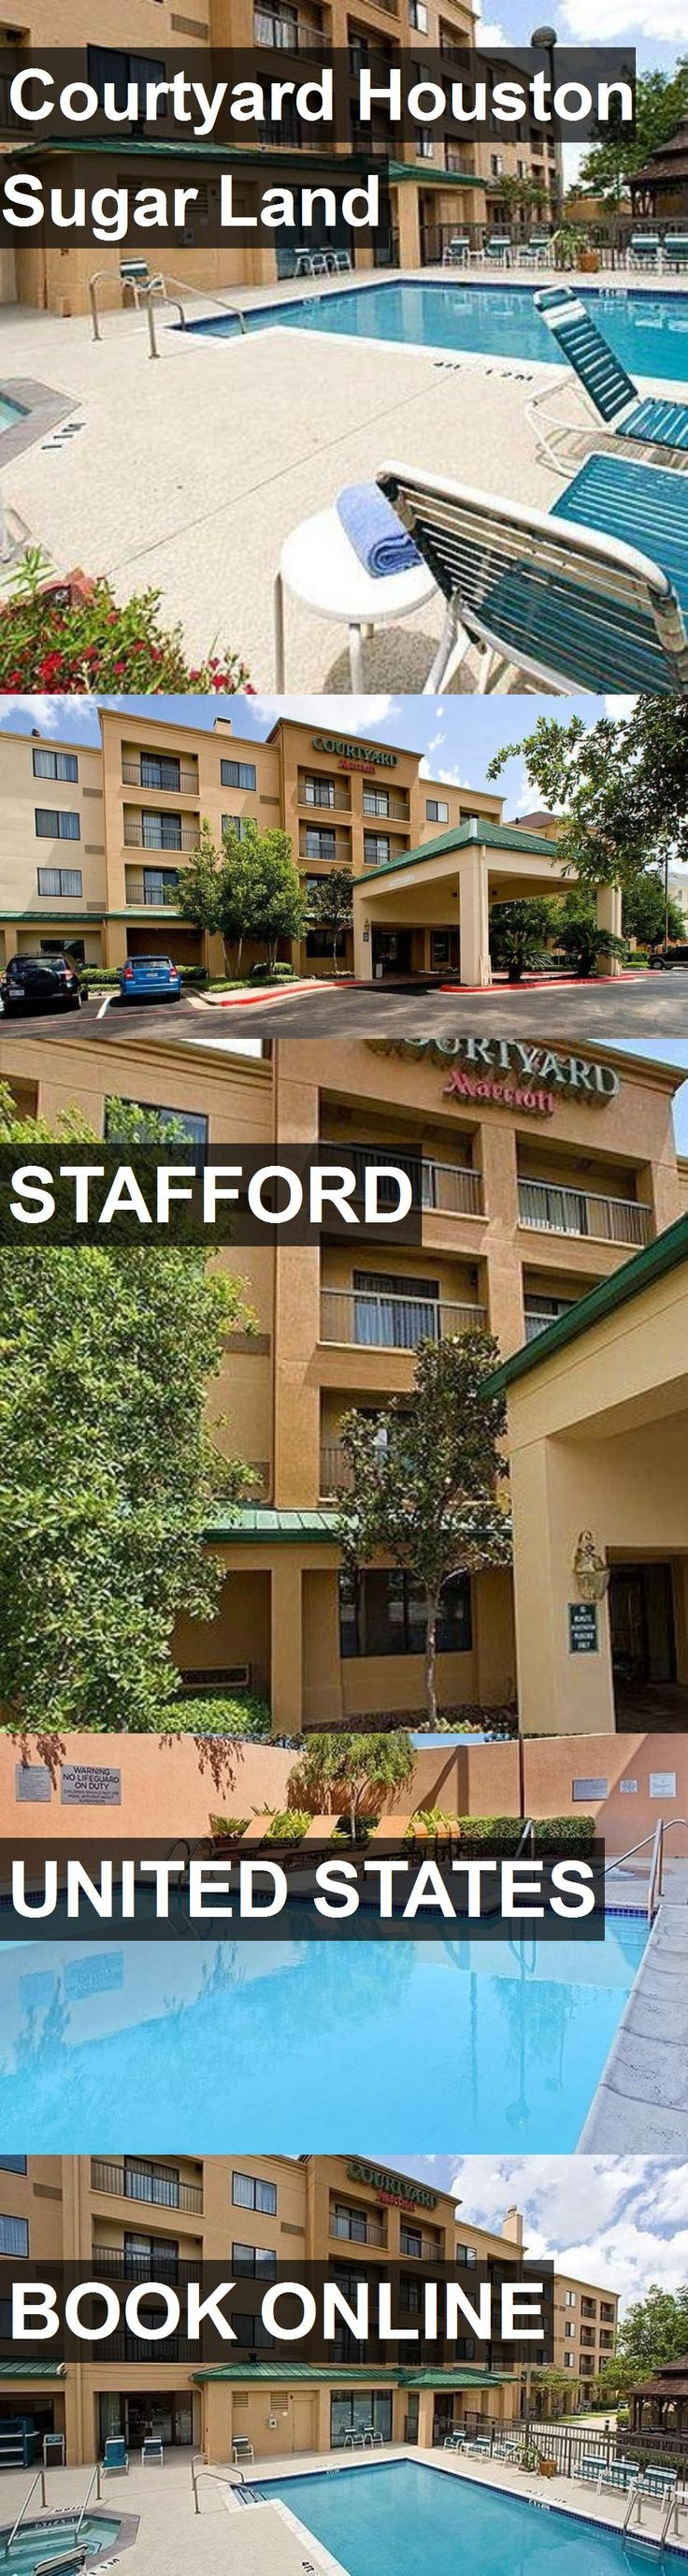 Hotel Courtyard Houston Sugar Land in Stafford, United States. For more information, photos, reviews and best prices please follow the link. #UnitedStates #Stafford #CourtyardHoustonSugarLand #hotel #travel #vacation